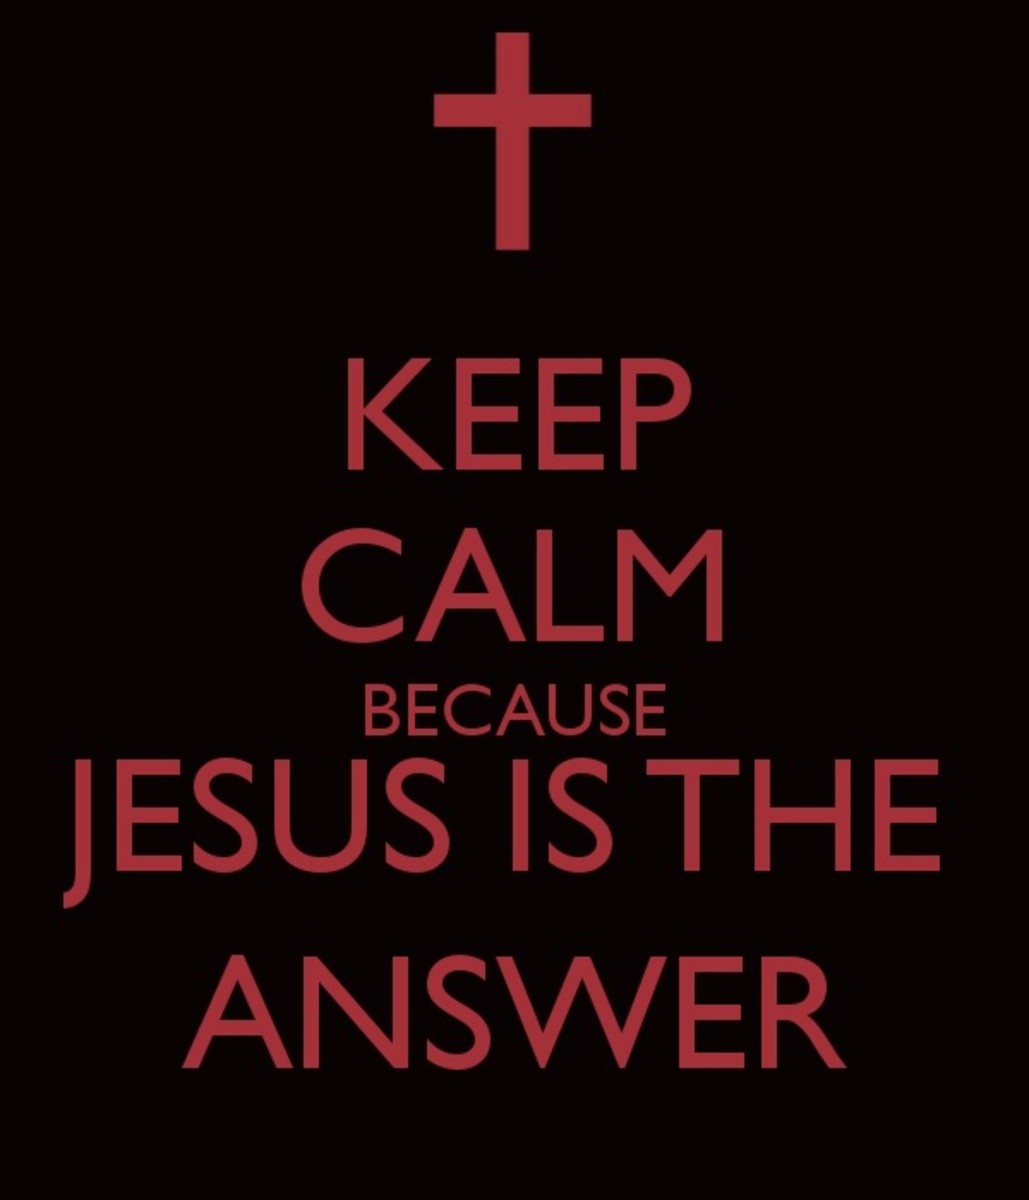 He Still Has Your Answer!